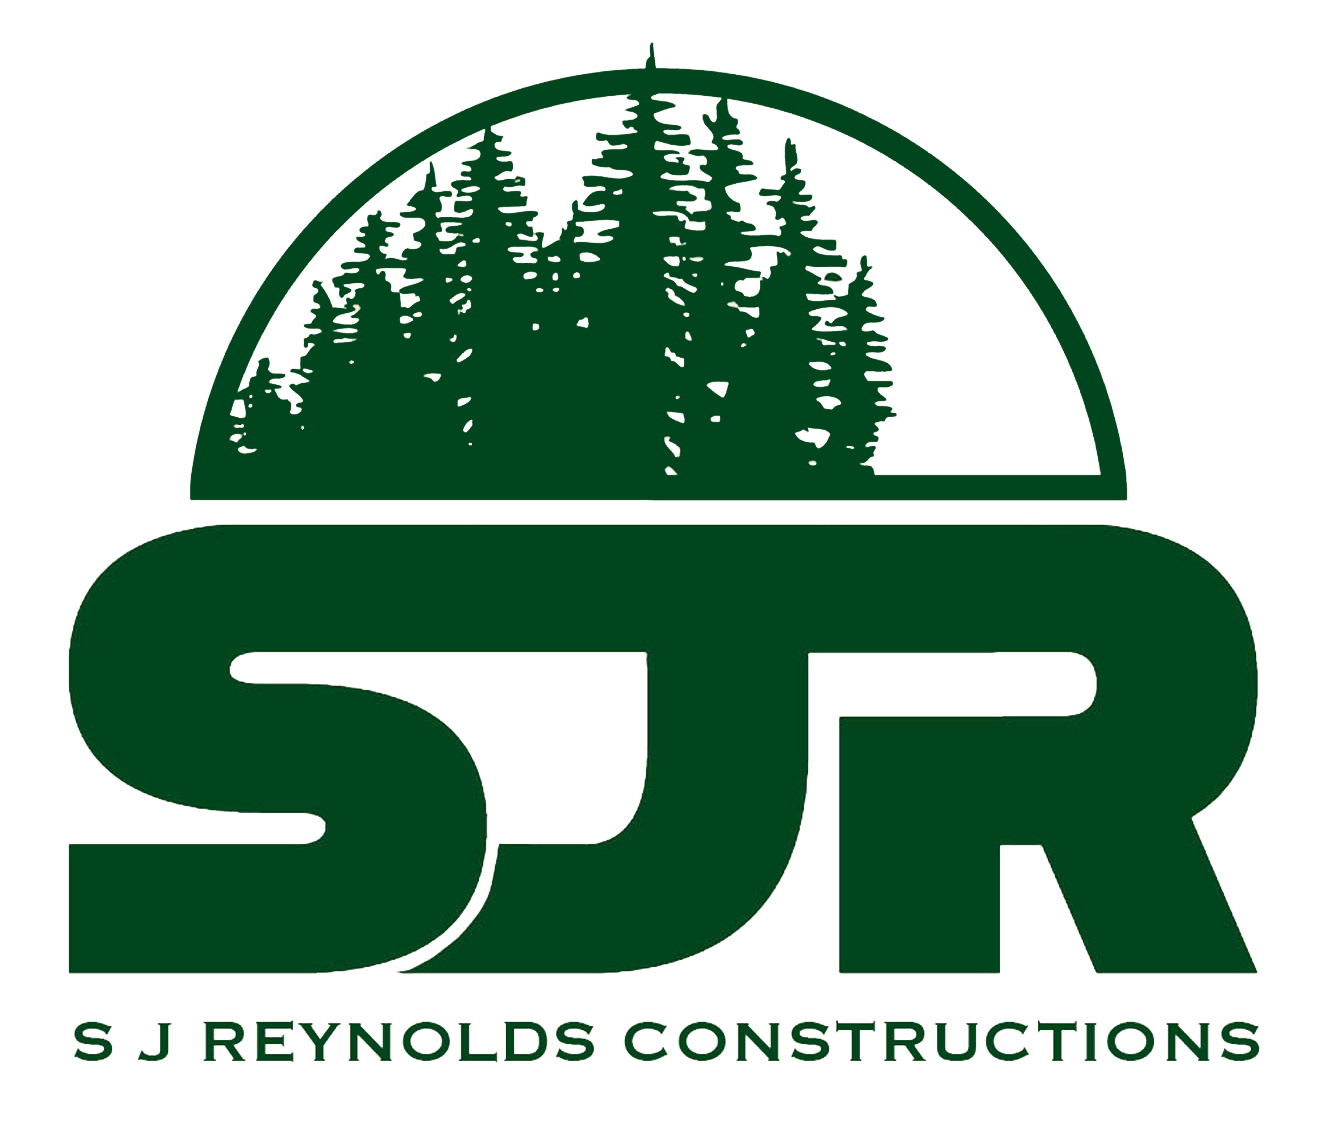 s j reynolds costruction logo